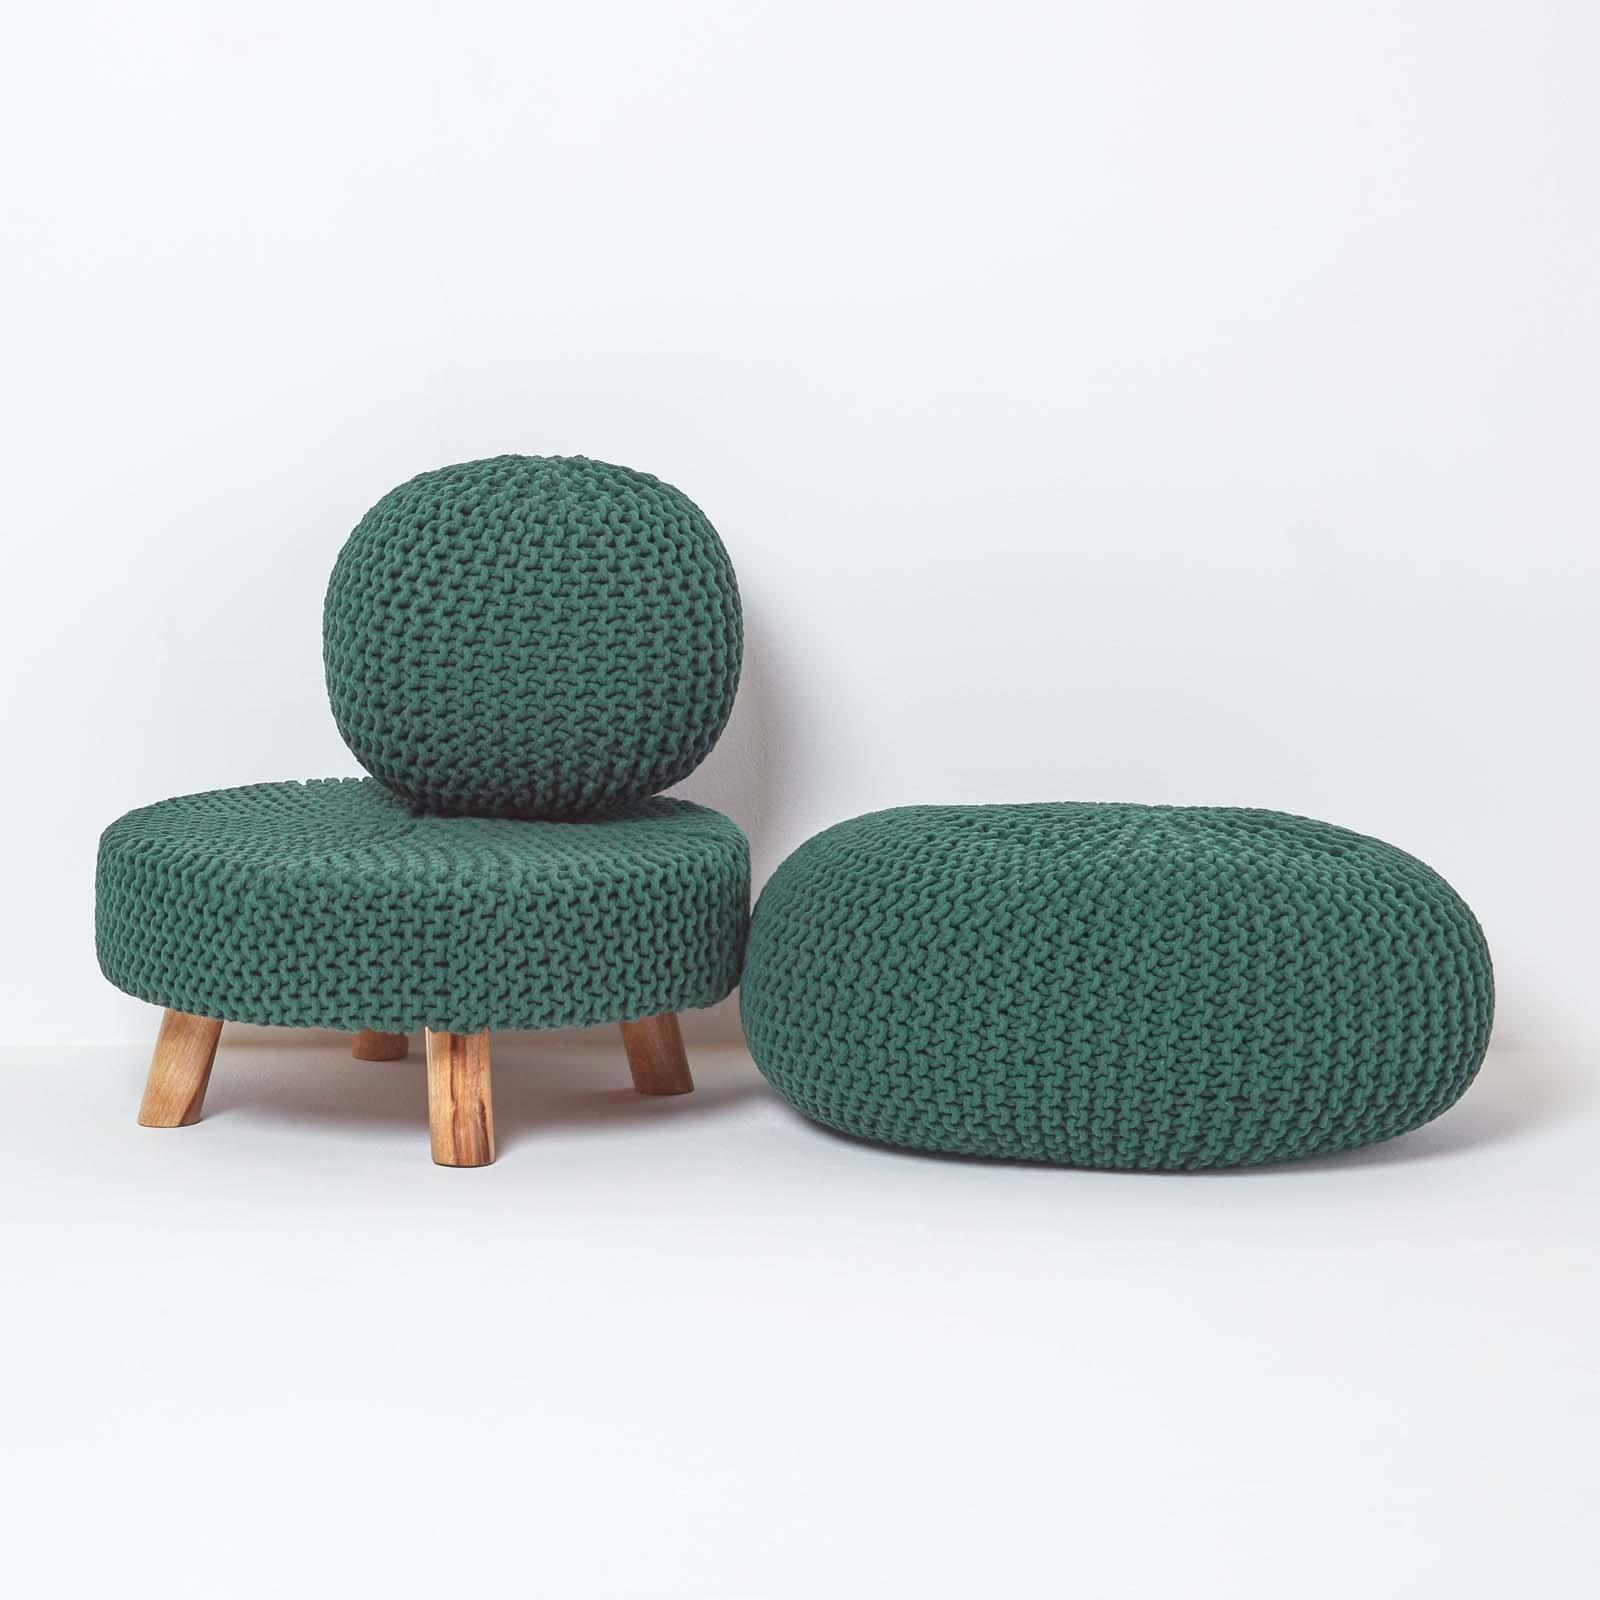 Hand-Knitted-100-Cotton-Pouffes-Round-Sphere-Or-Cube-Square-Chunky-Footstools thumbnail 47